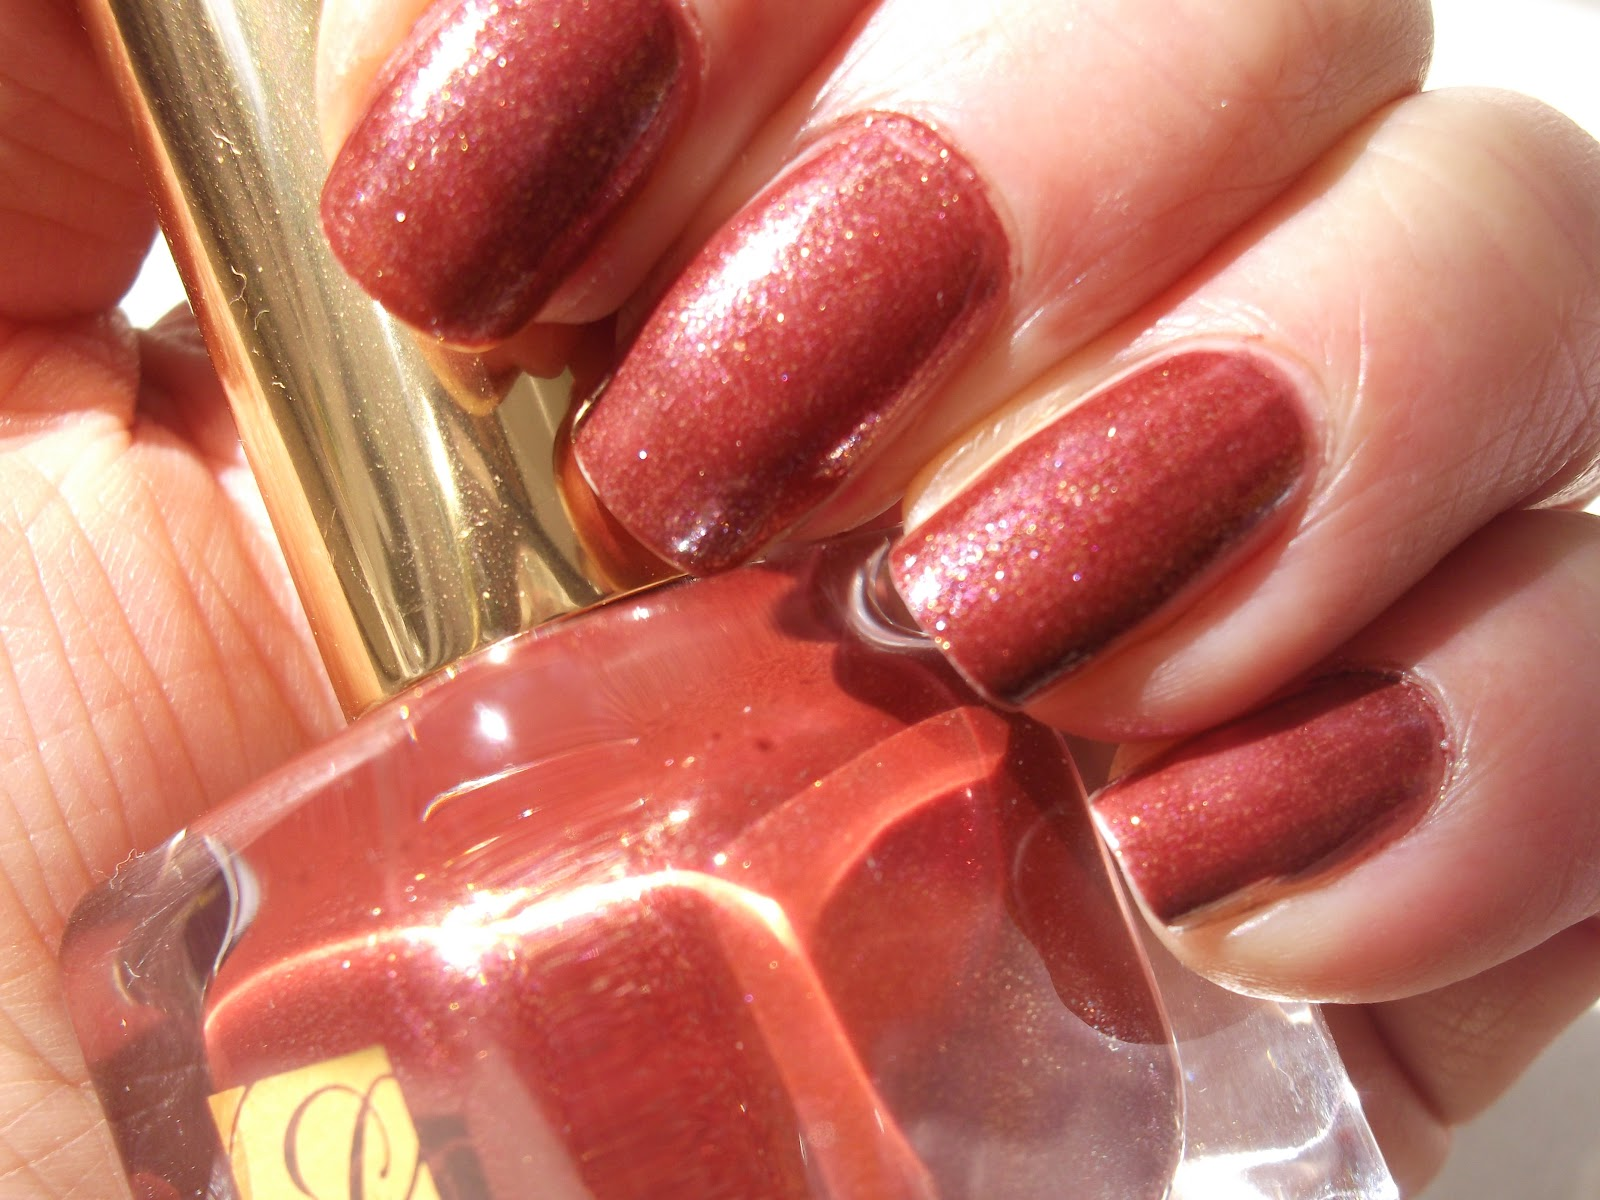 Estee Lauder Fiery Hot Pure Color Nail Lacquer Swatch | British ...